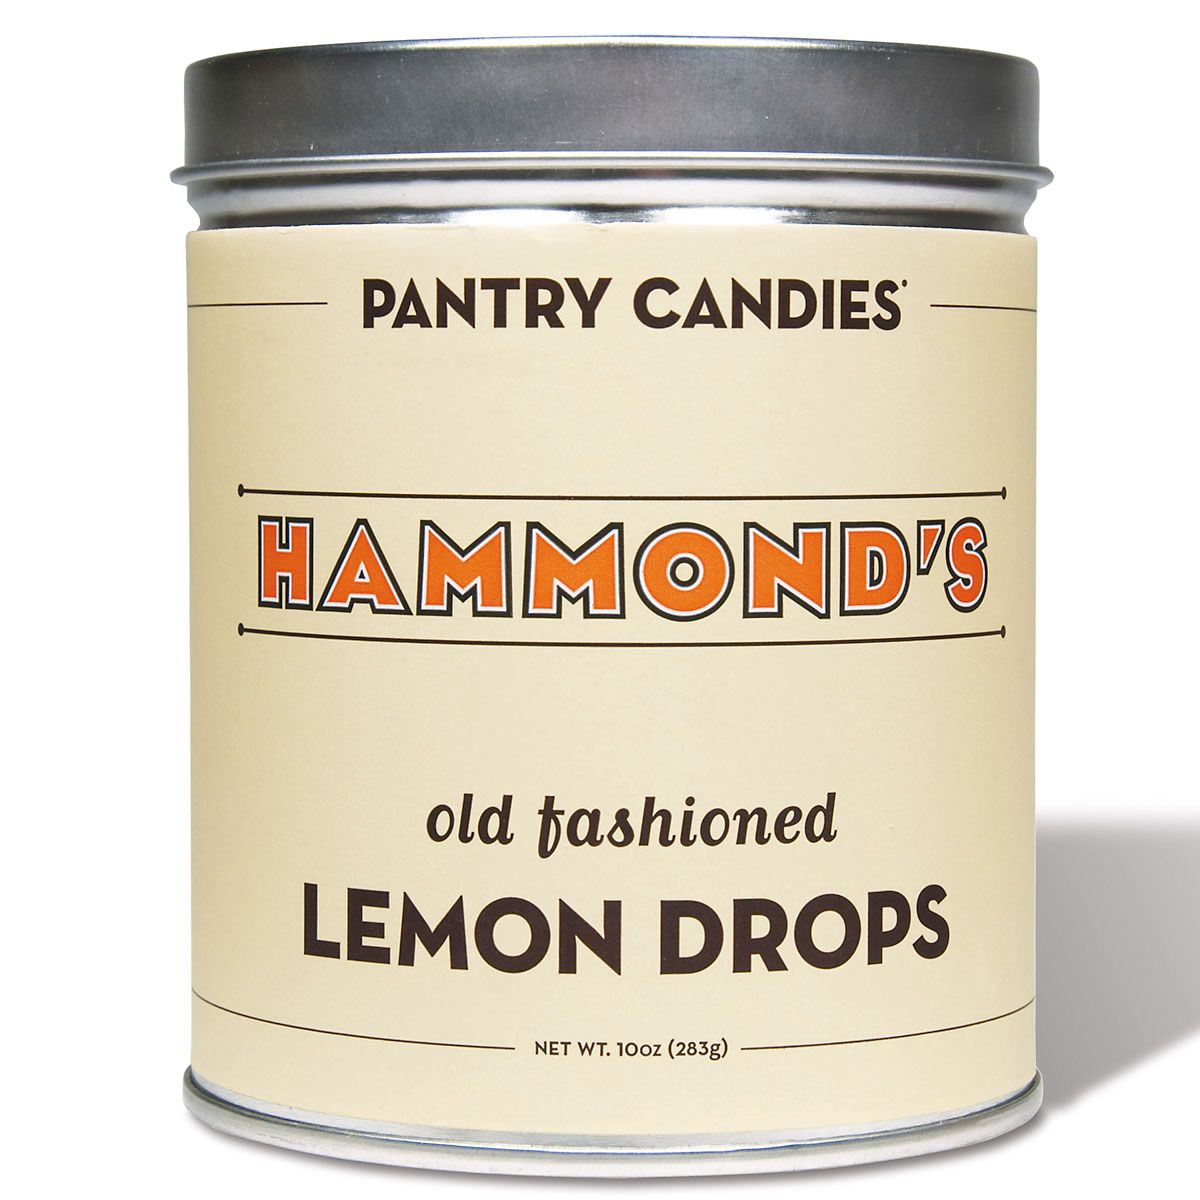 Hammond's Old Fashioned Candy Drops - Lemon